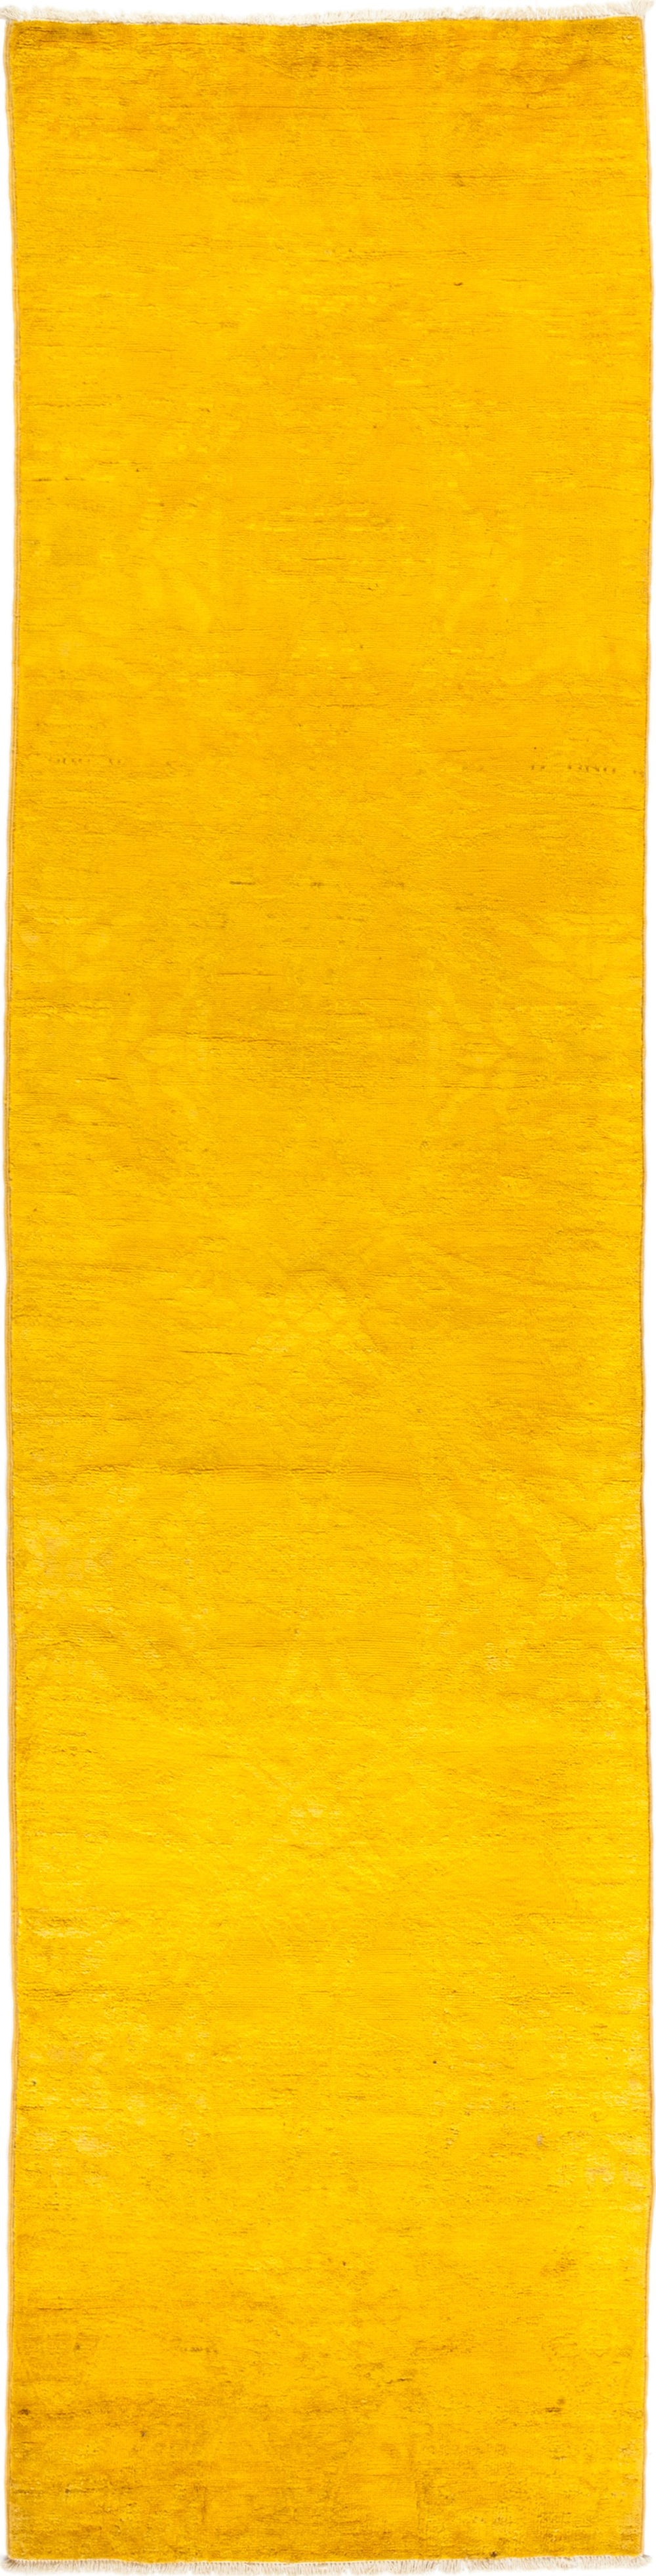 "Vibrance, Yellow Wool Runner Rug - 2' 7"" x 10' 3"""